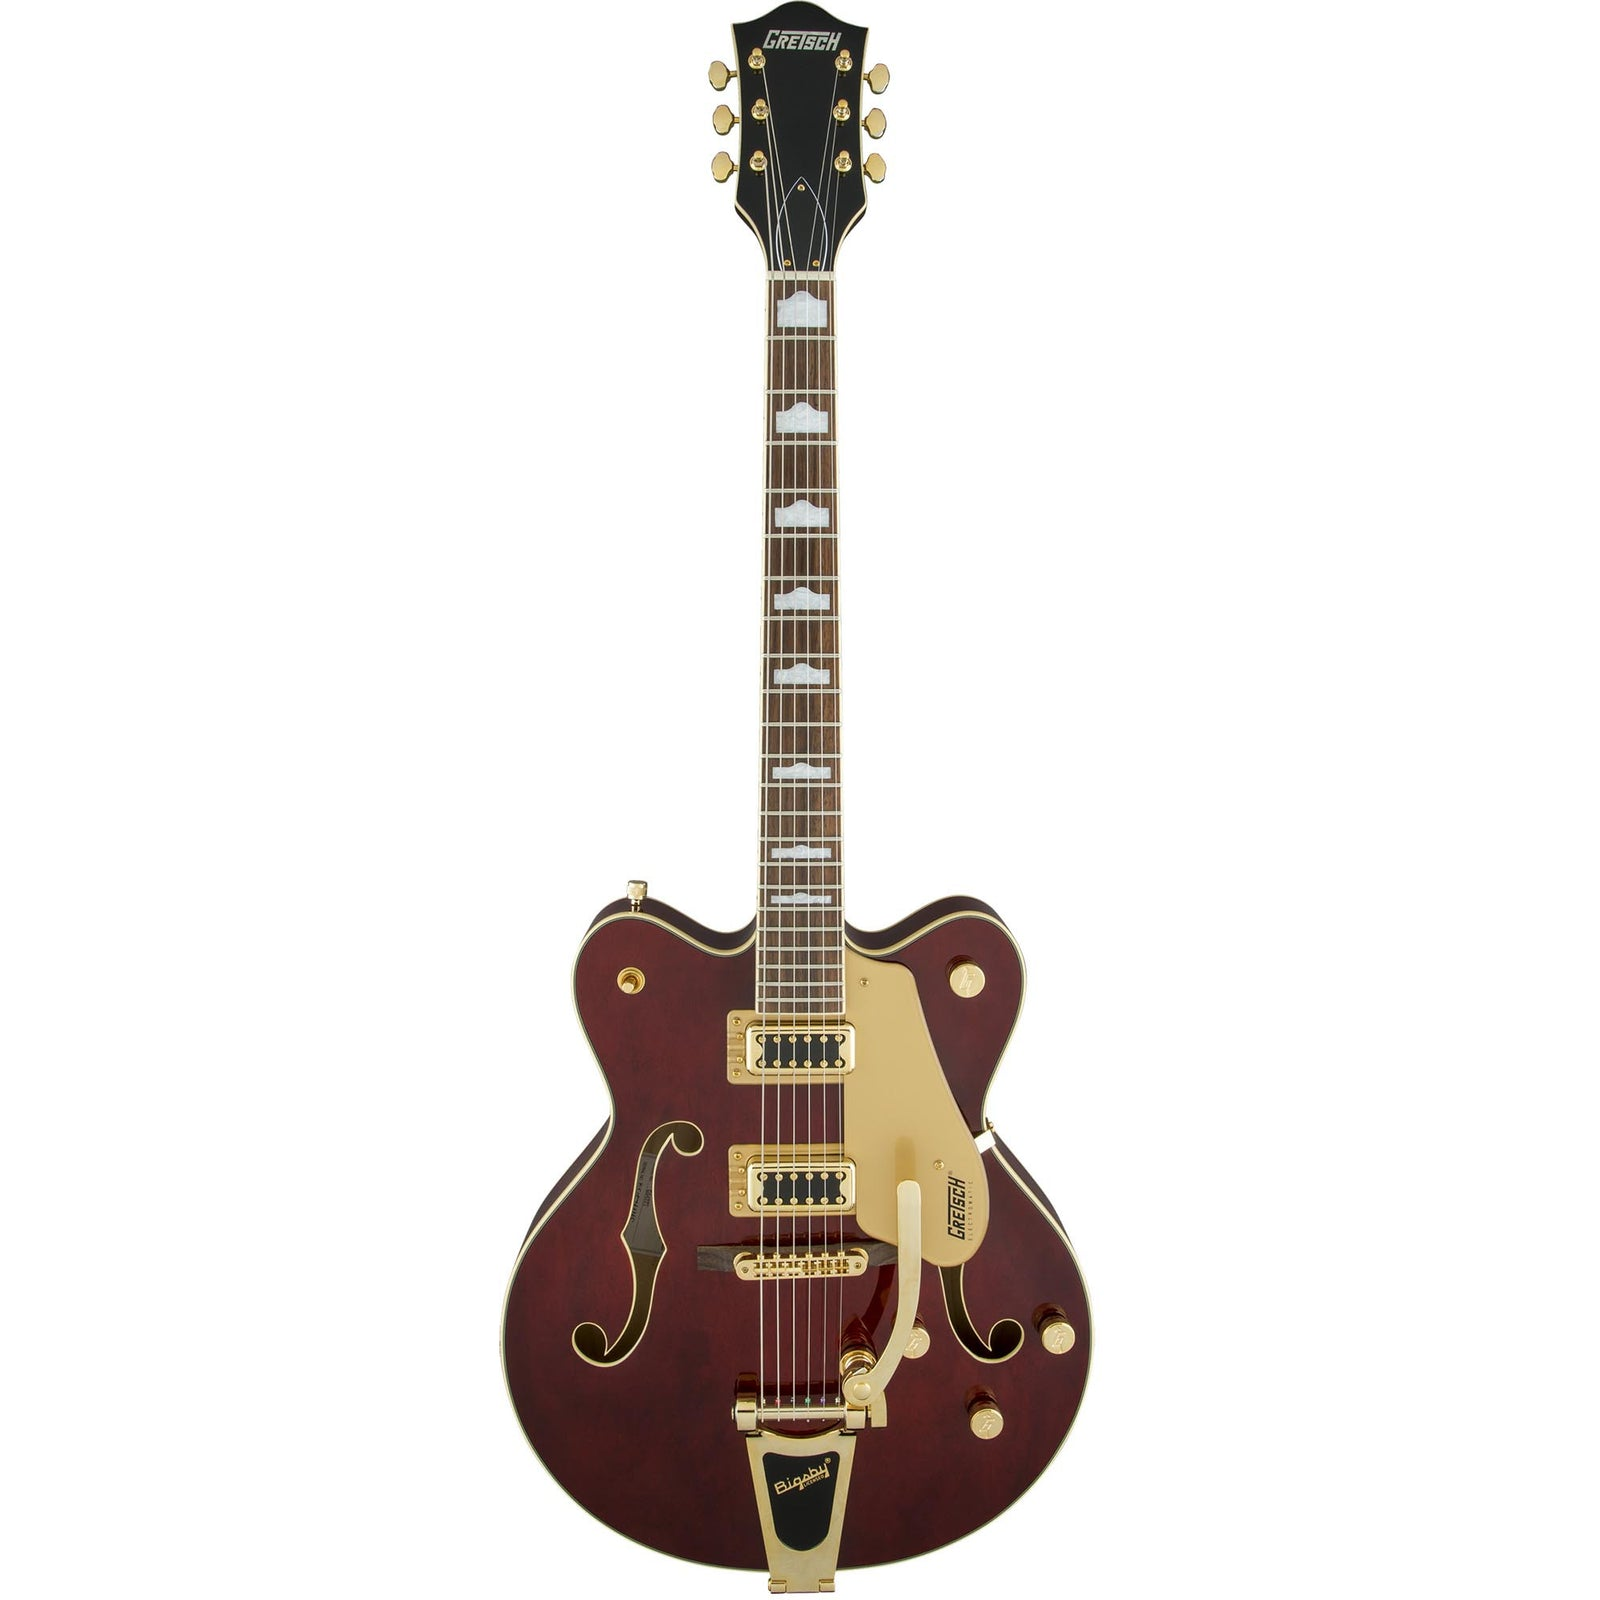 Gretsch G5422Tg Electromatic Hollowbody, Walnut Stain